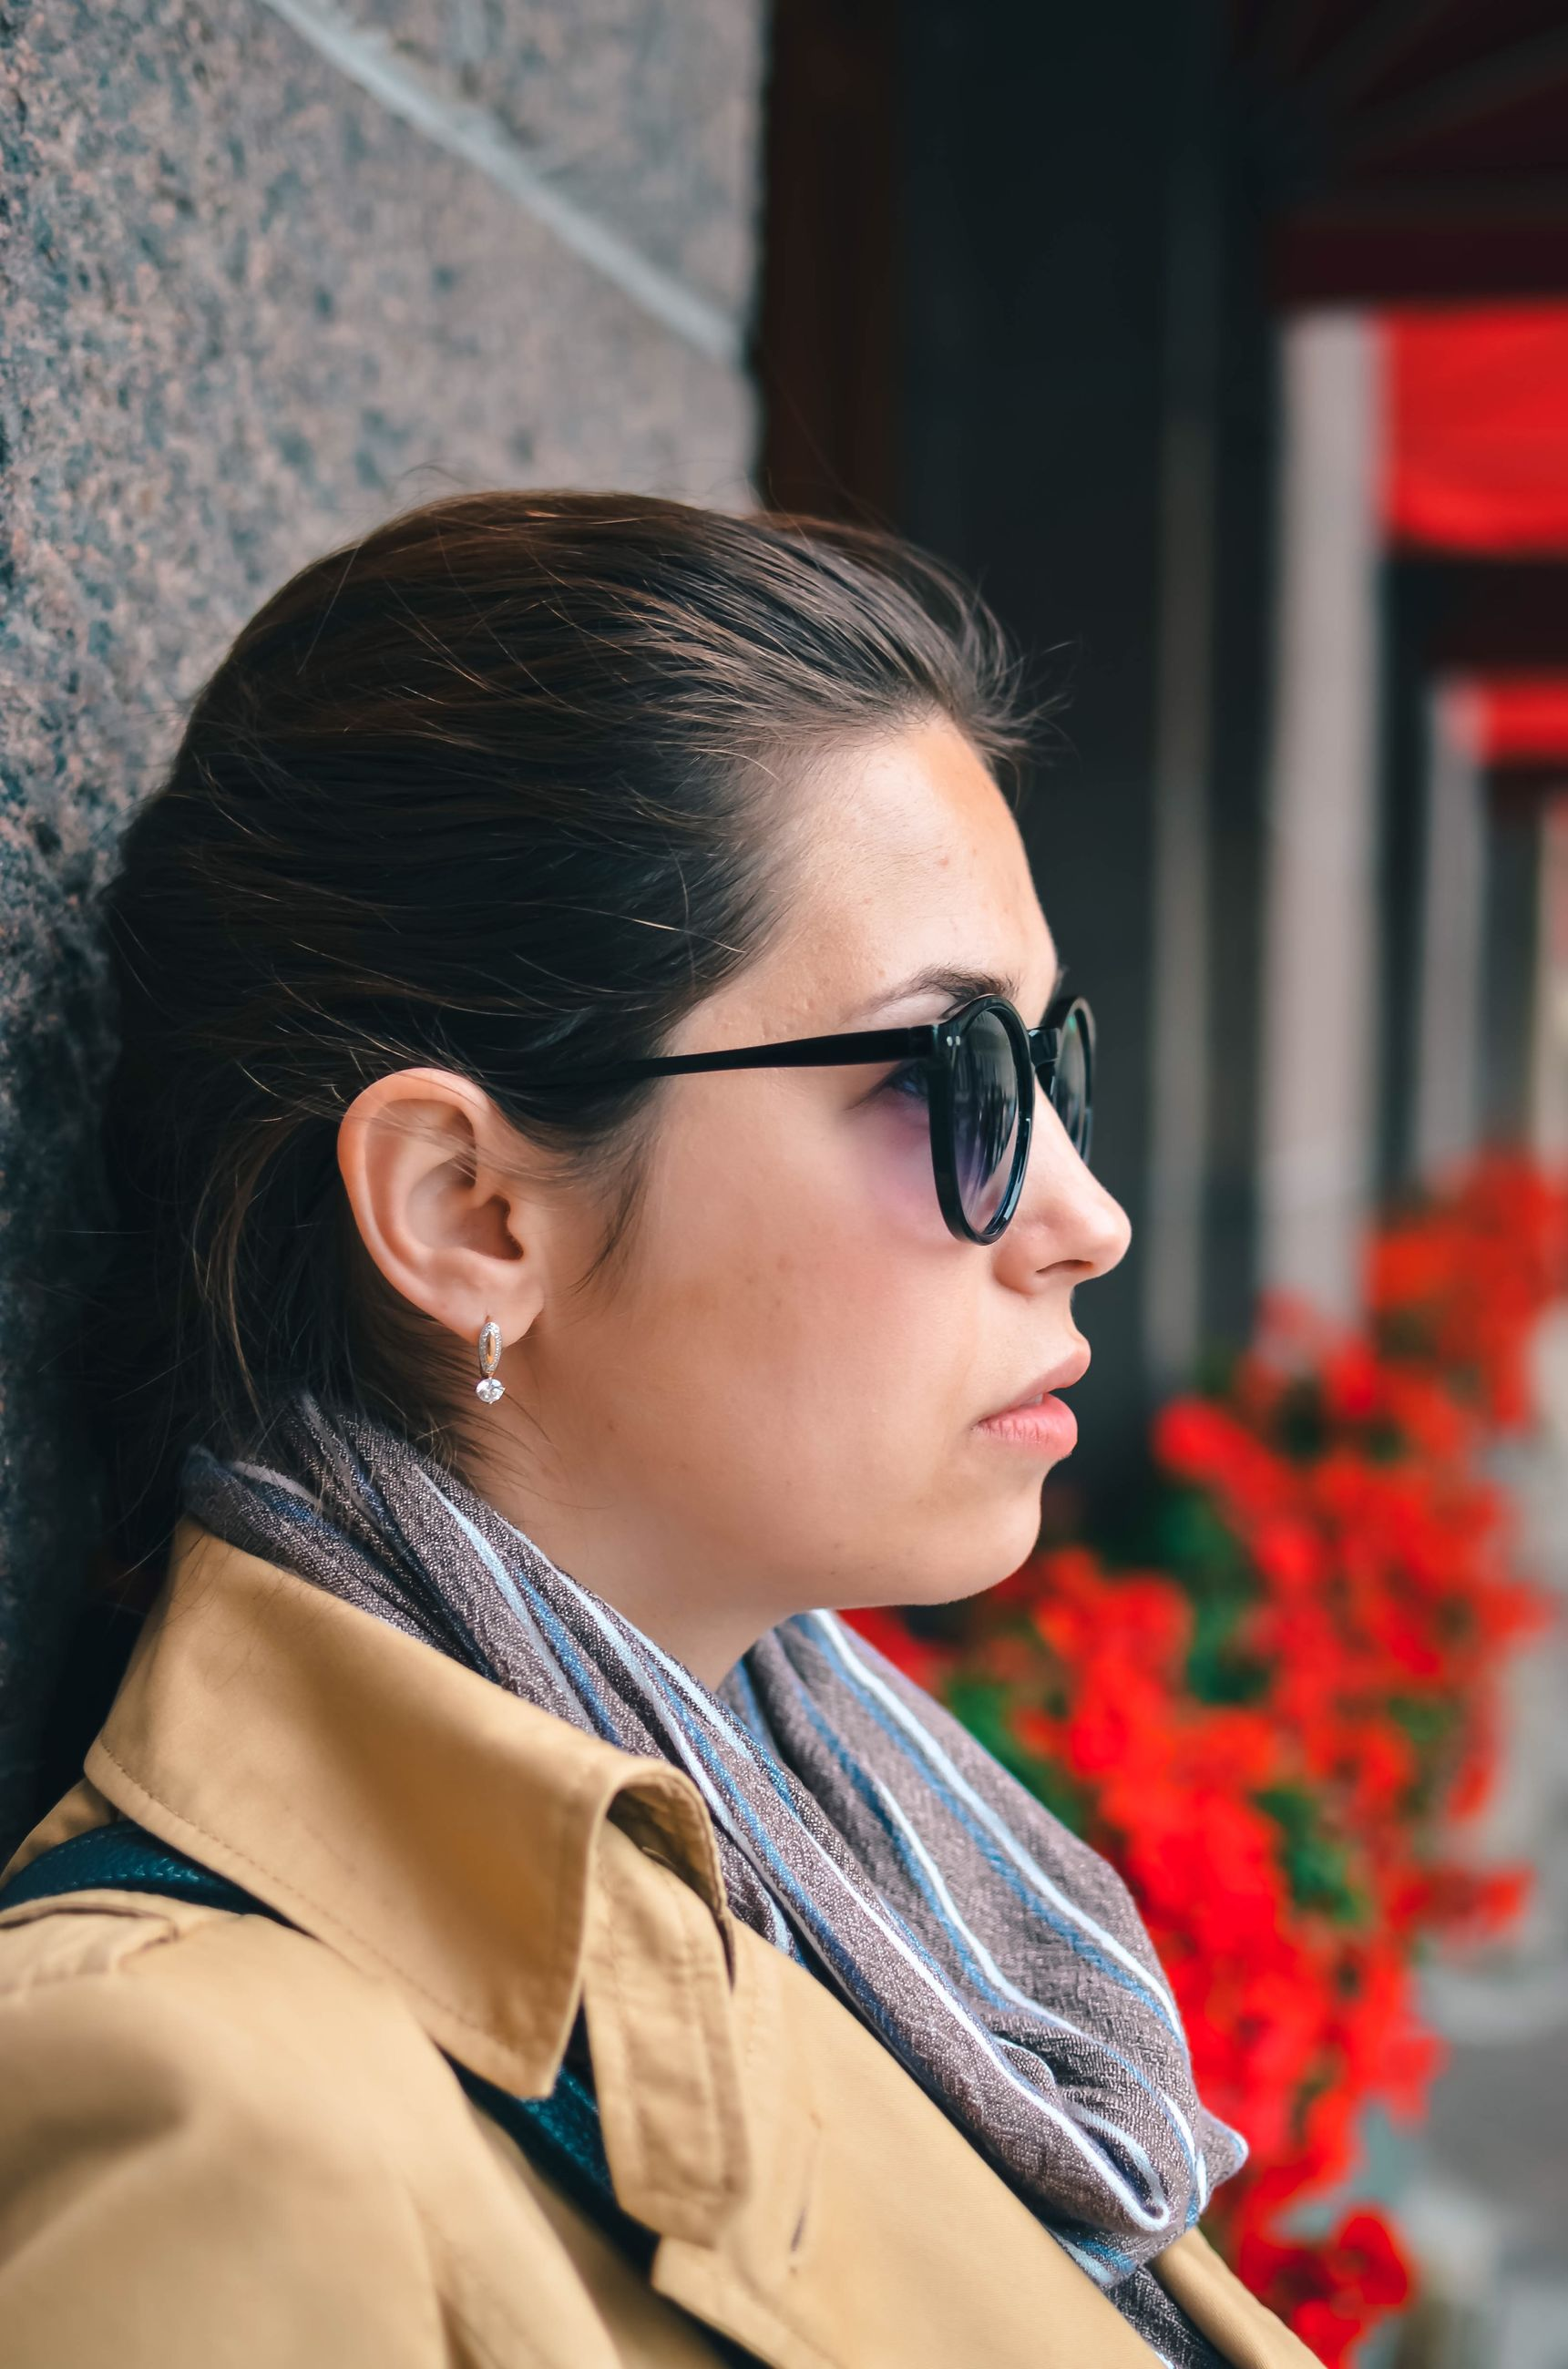 headshot, real people, young adult, lifestyles, one person, glasses, young women, portrait, leisure activity, looking away, casual clothing, focus on foreground, women, looking, hair, hairstyle, adult, eyeglasses, black hair, contemplation, outdoors, beautiful woman